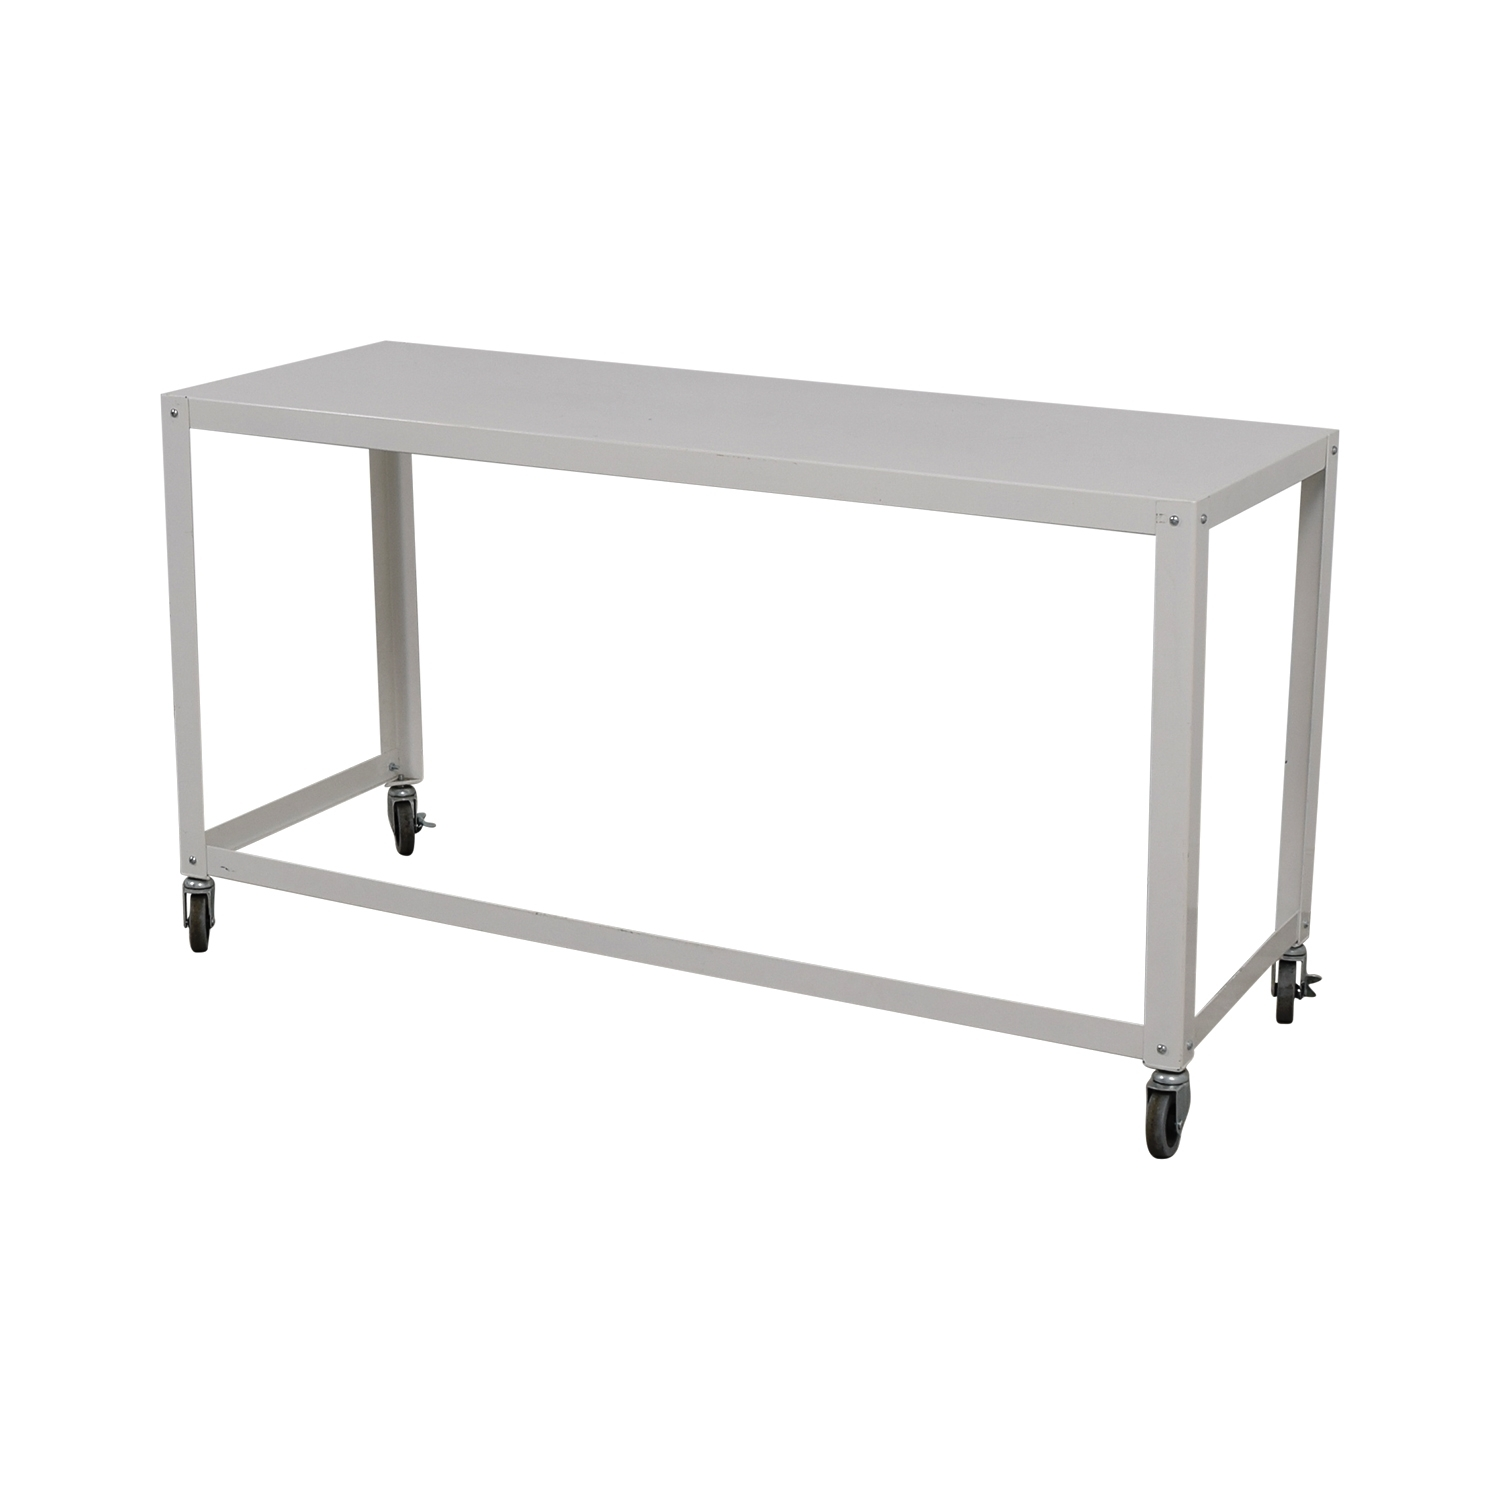 81% Off - Cb2 Cb2 Go-Cart White Rolling Desk / Tables intended for Go-Cart White Rolling Coffee Tables (Image 3 of 30)